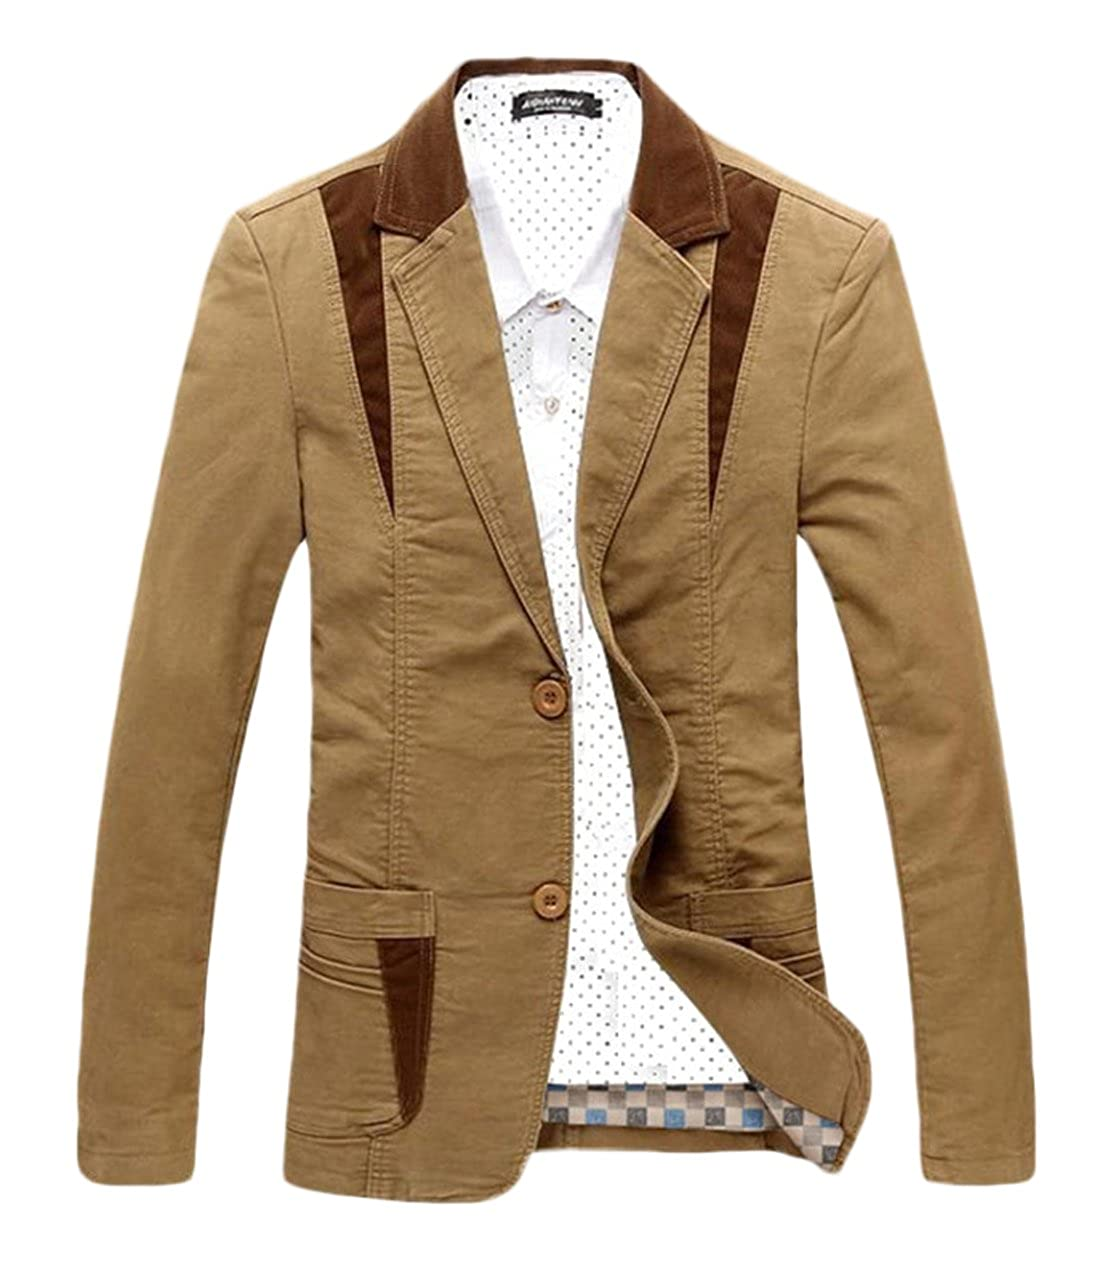 Chartou Men's Casual Western-Style Lightweight Slim Two-Buttons Cotton Suit Blazers Jacket